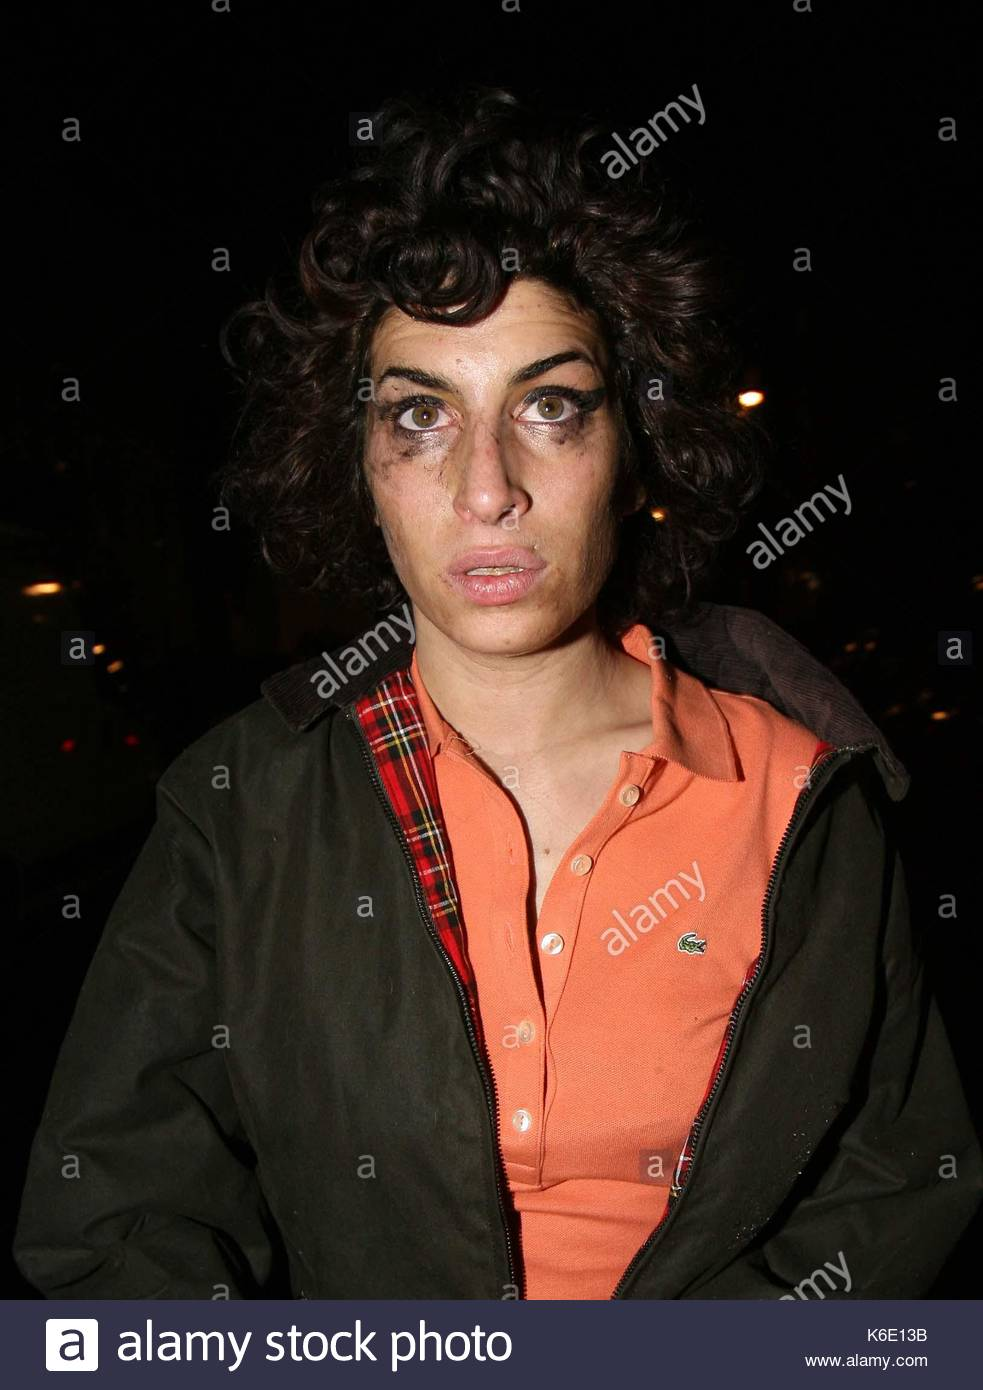 mobile house with Stock Photo Amy Winehouse Amy Winehouse Seen  Ing Out Of A London Drugs And 158889455 on Stock Photo Amy Winehouse Amy Winehouse Seen  ing Out Of A London Drugs And 158889455 additionally Zaton furthermore 3049249221 as well New logo for realtor dot likewise Menton.